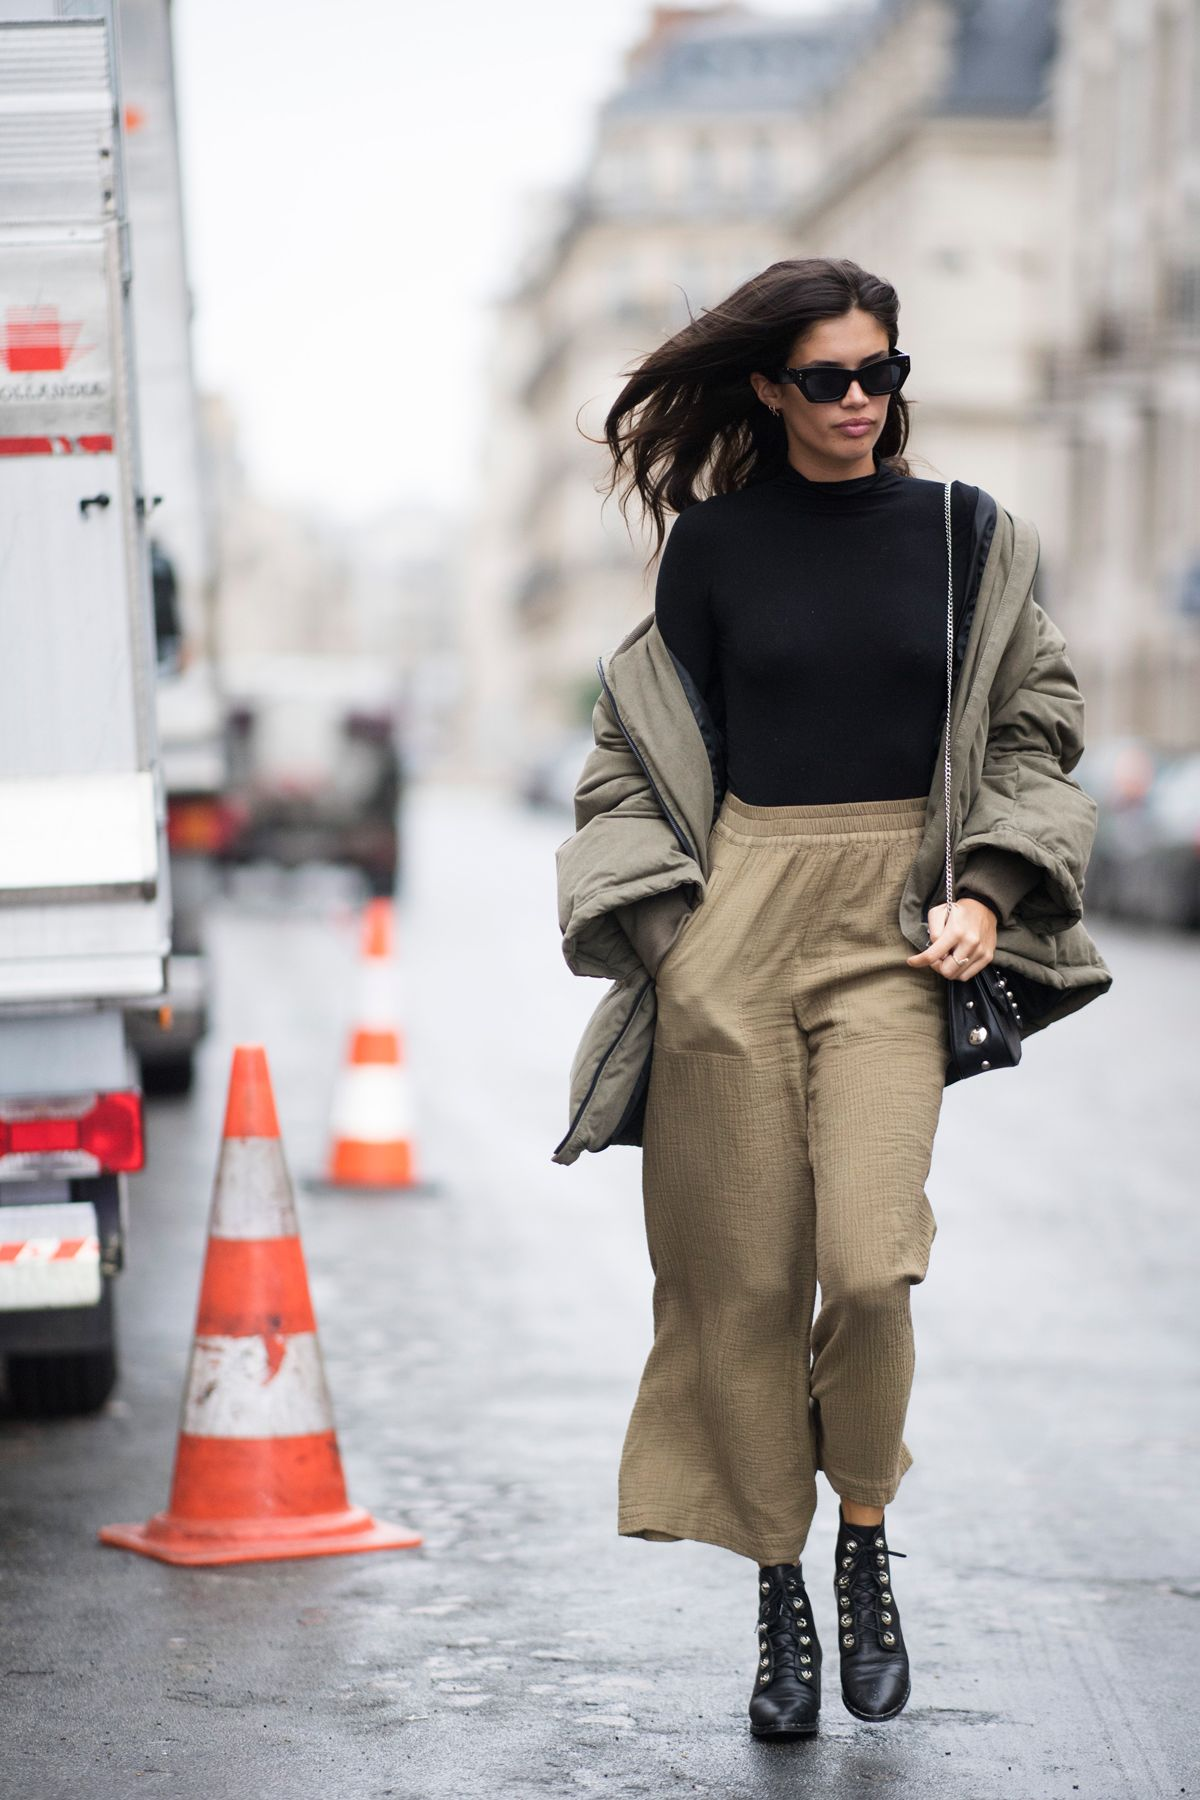 Communication on this topic: Street Chic Moments, street-chic-moments/